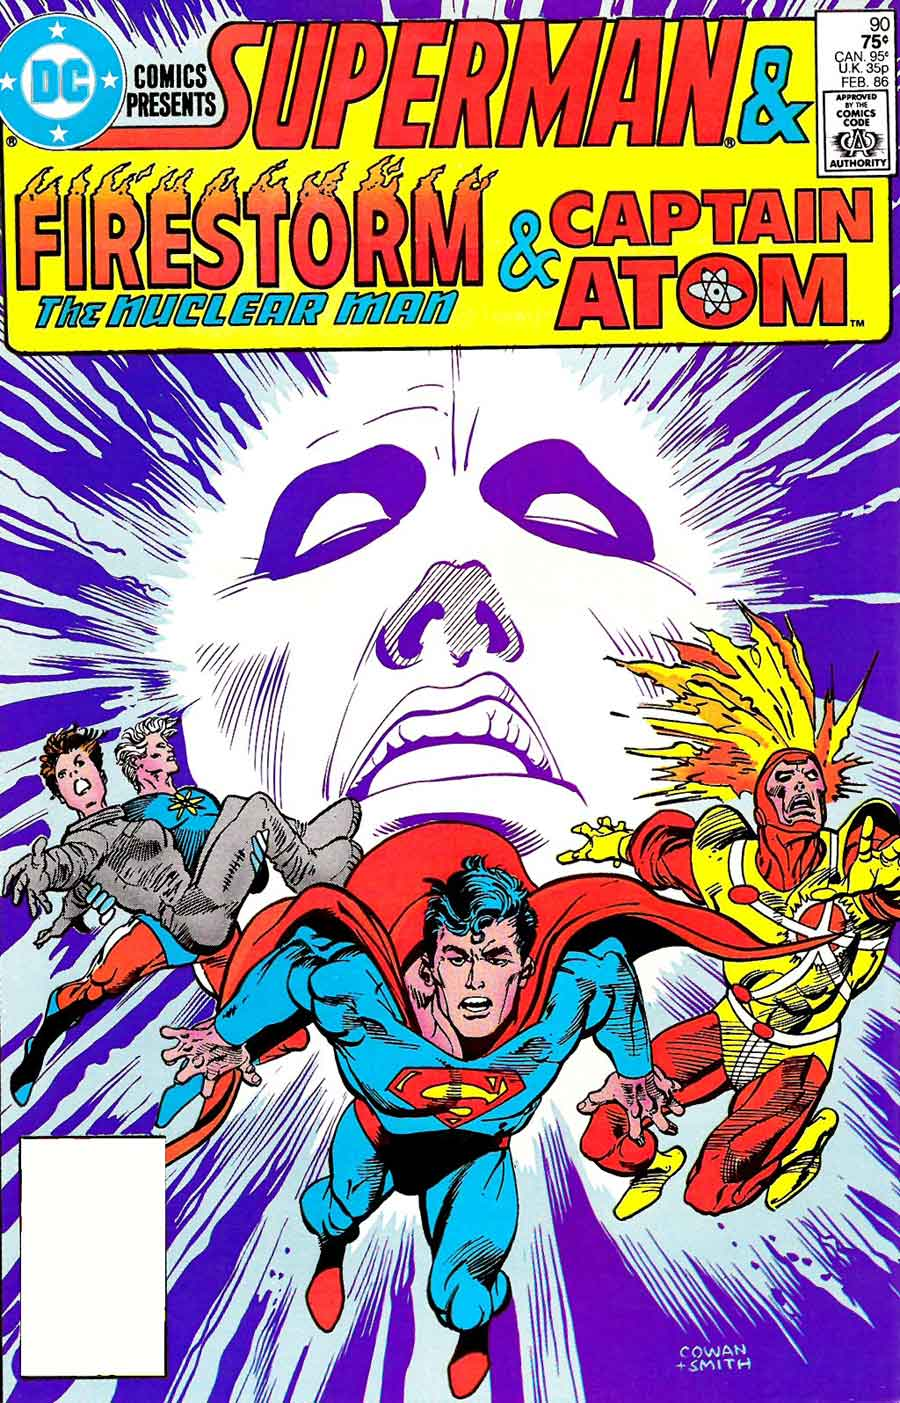 DC Comics Presents #90 by Paul Kupperberg, Denys Cowan, and Dave Hunt